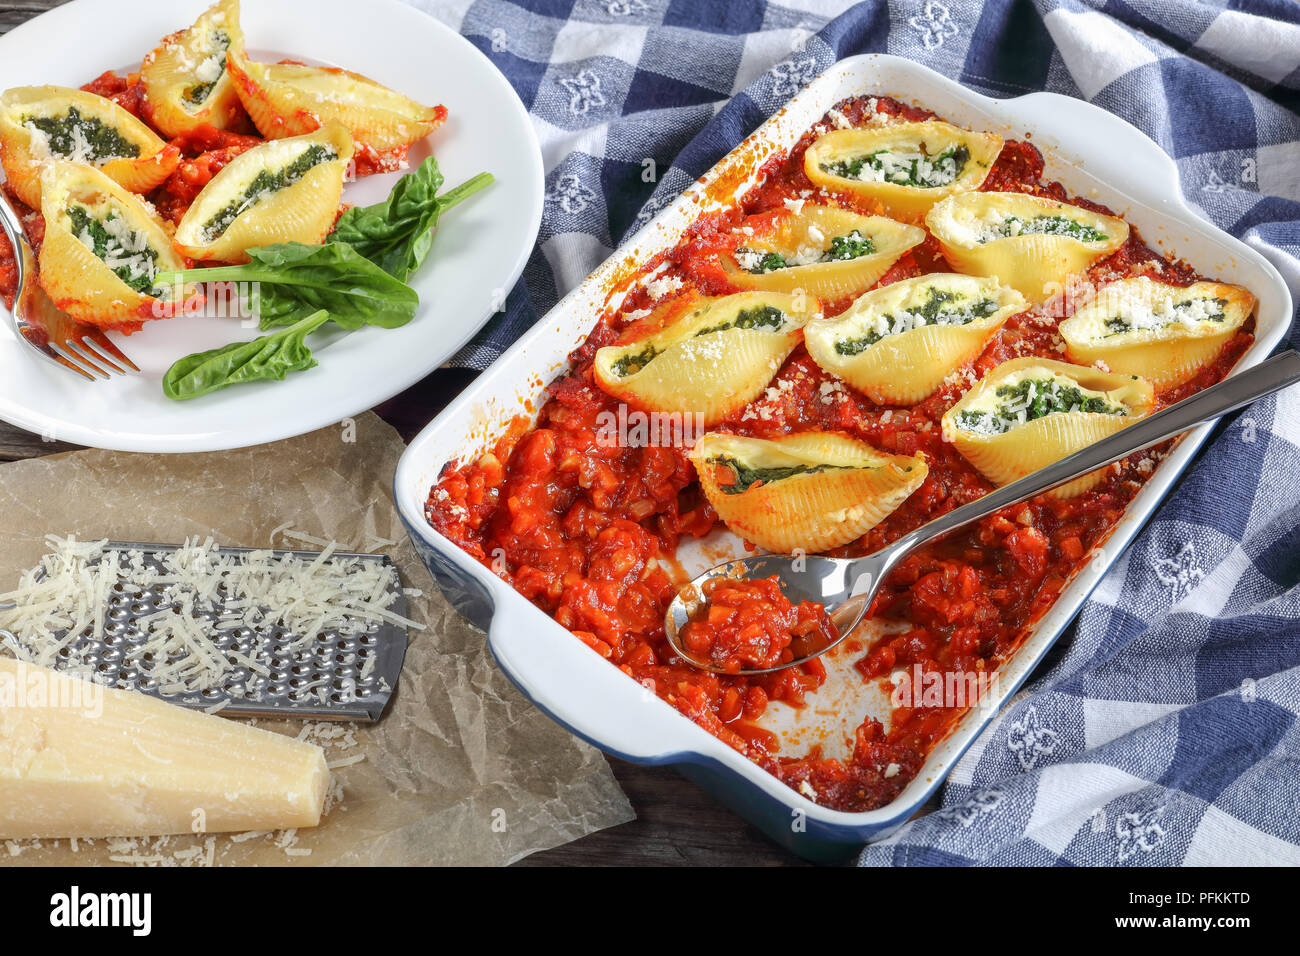 portion of shell shaped pasta stuffed with creamy soft cheese and spinach, baked in marinara sauce served on plate on dark wooden table with grated pa - Stock Image